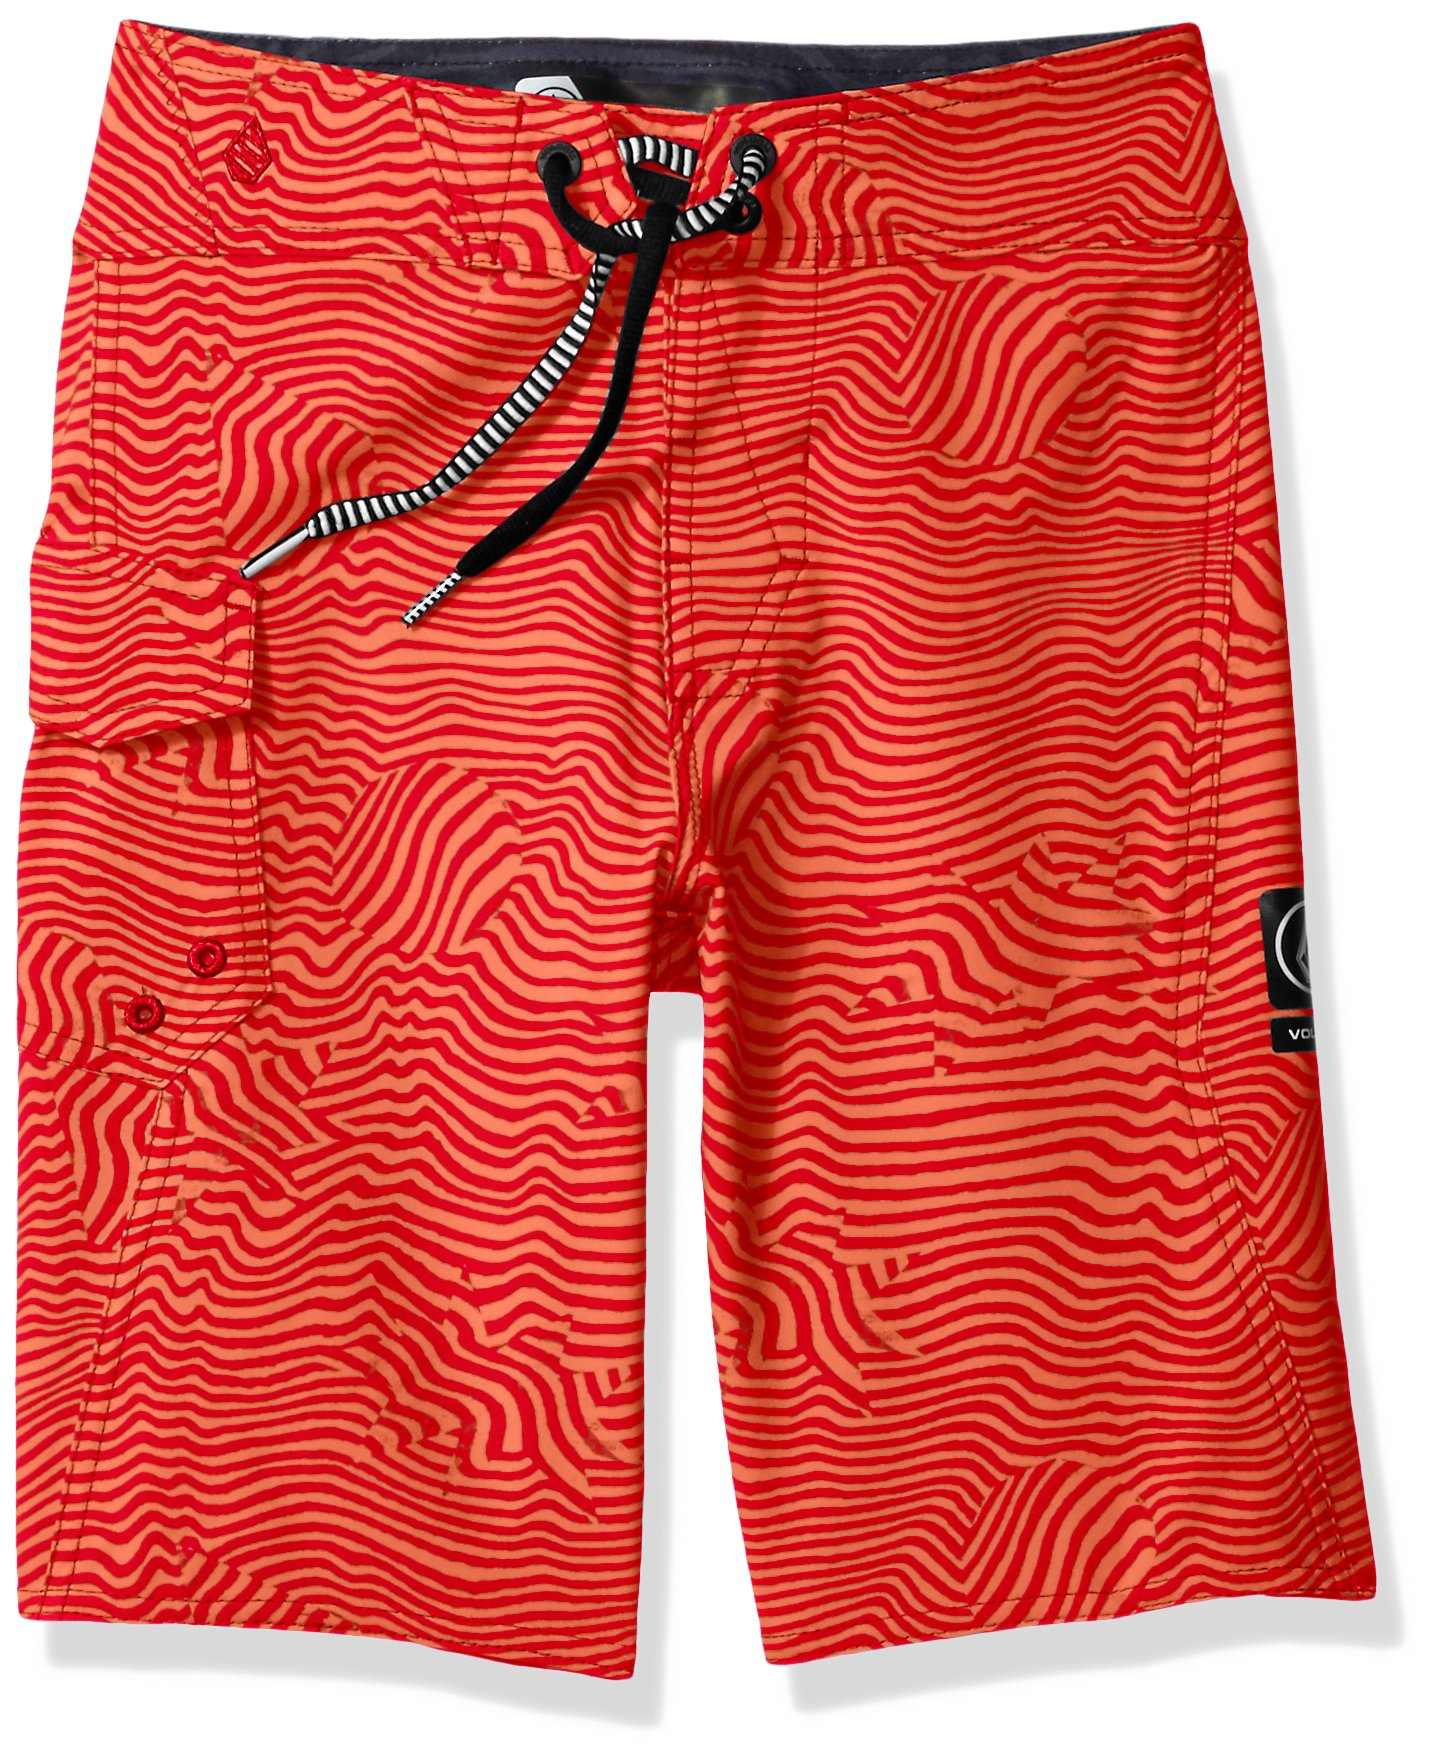 Volcom Big Boys' Magnetic Stone Youth Boardshort, Toffee, 24